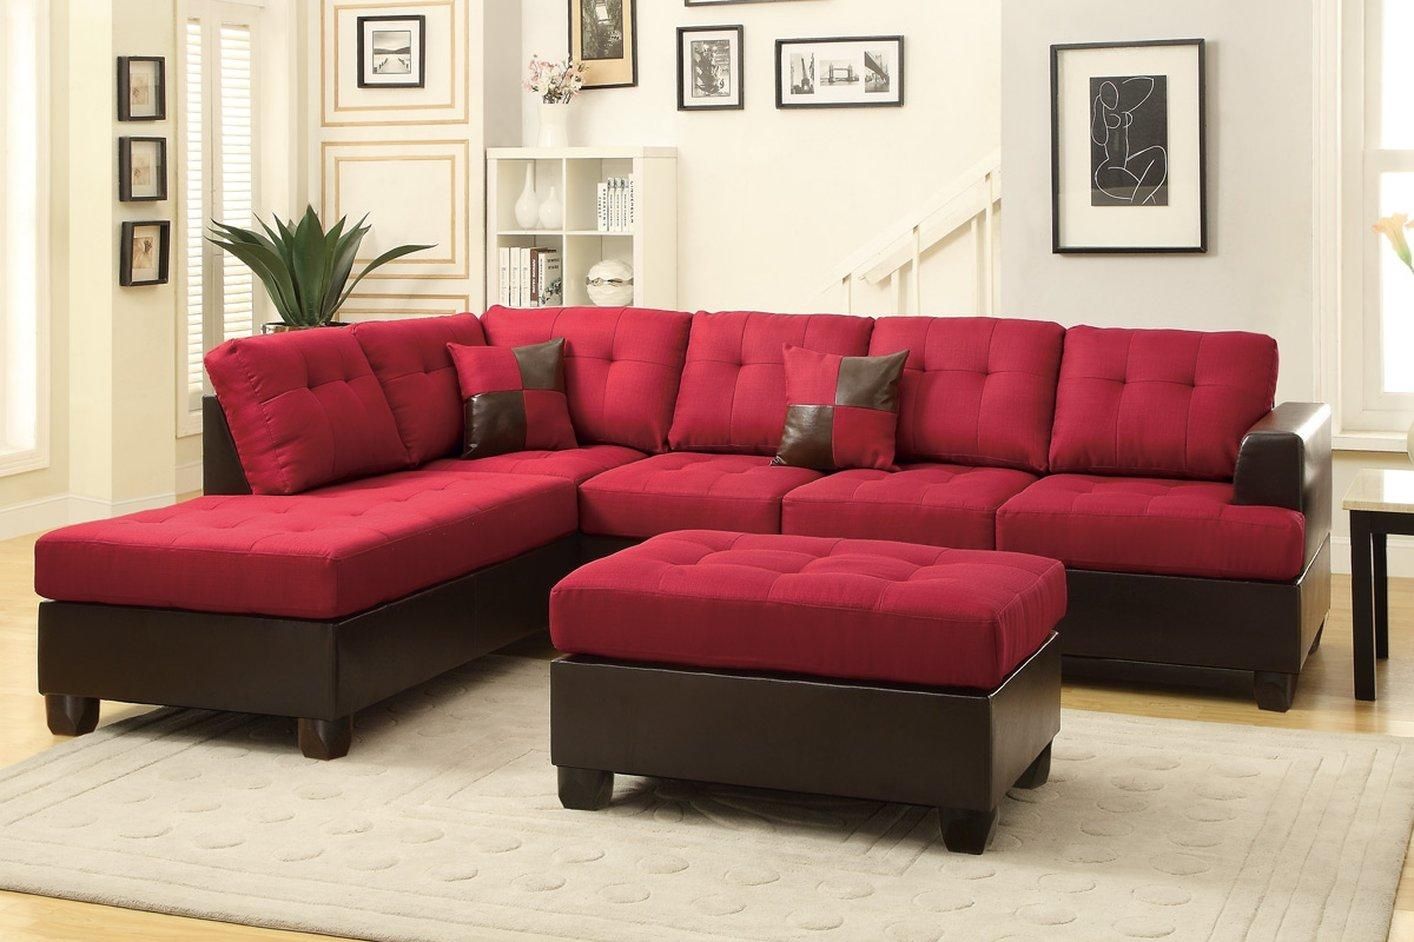 Glamorous Genuine Leather Chesterfield Sofa As Well As Modern With Regard To Red Sectional Sleeper Sofas (View 6 of 22)